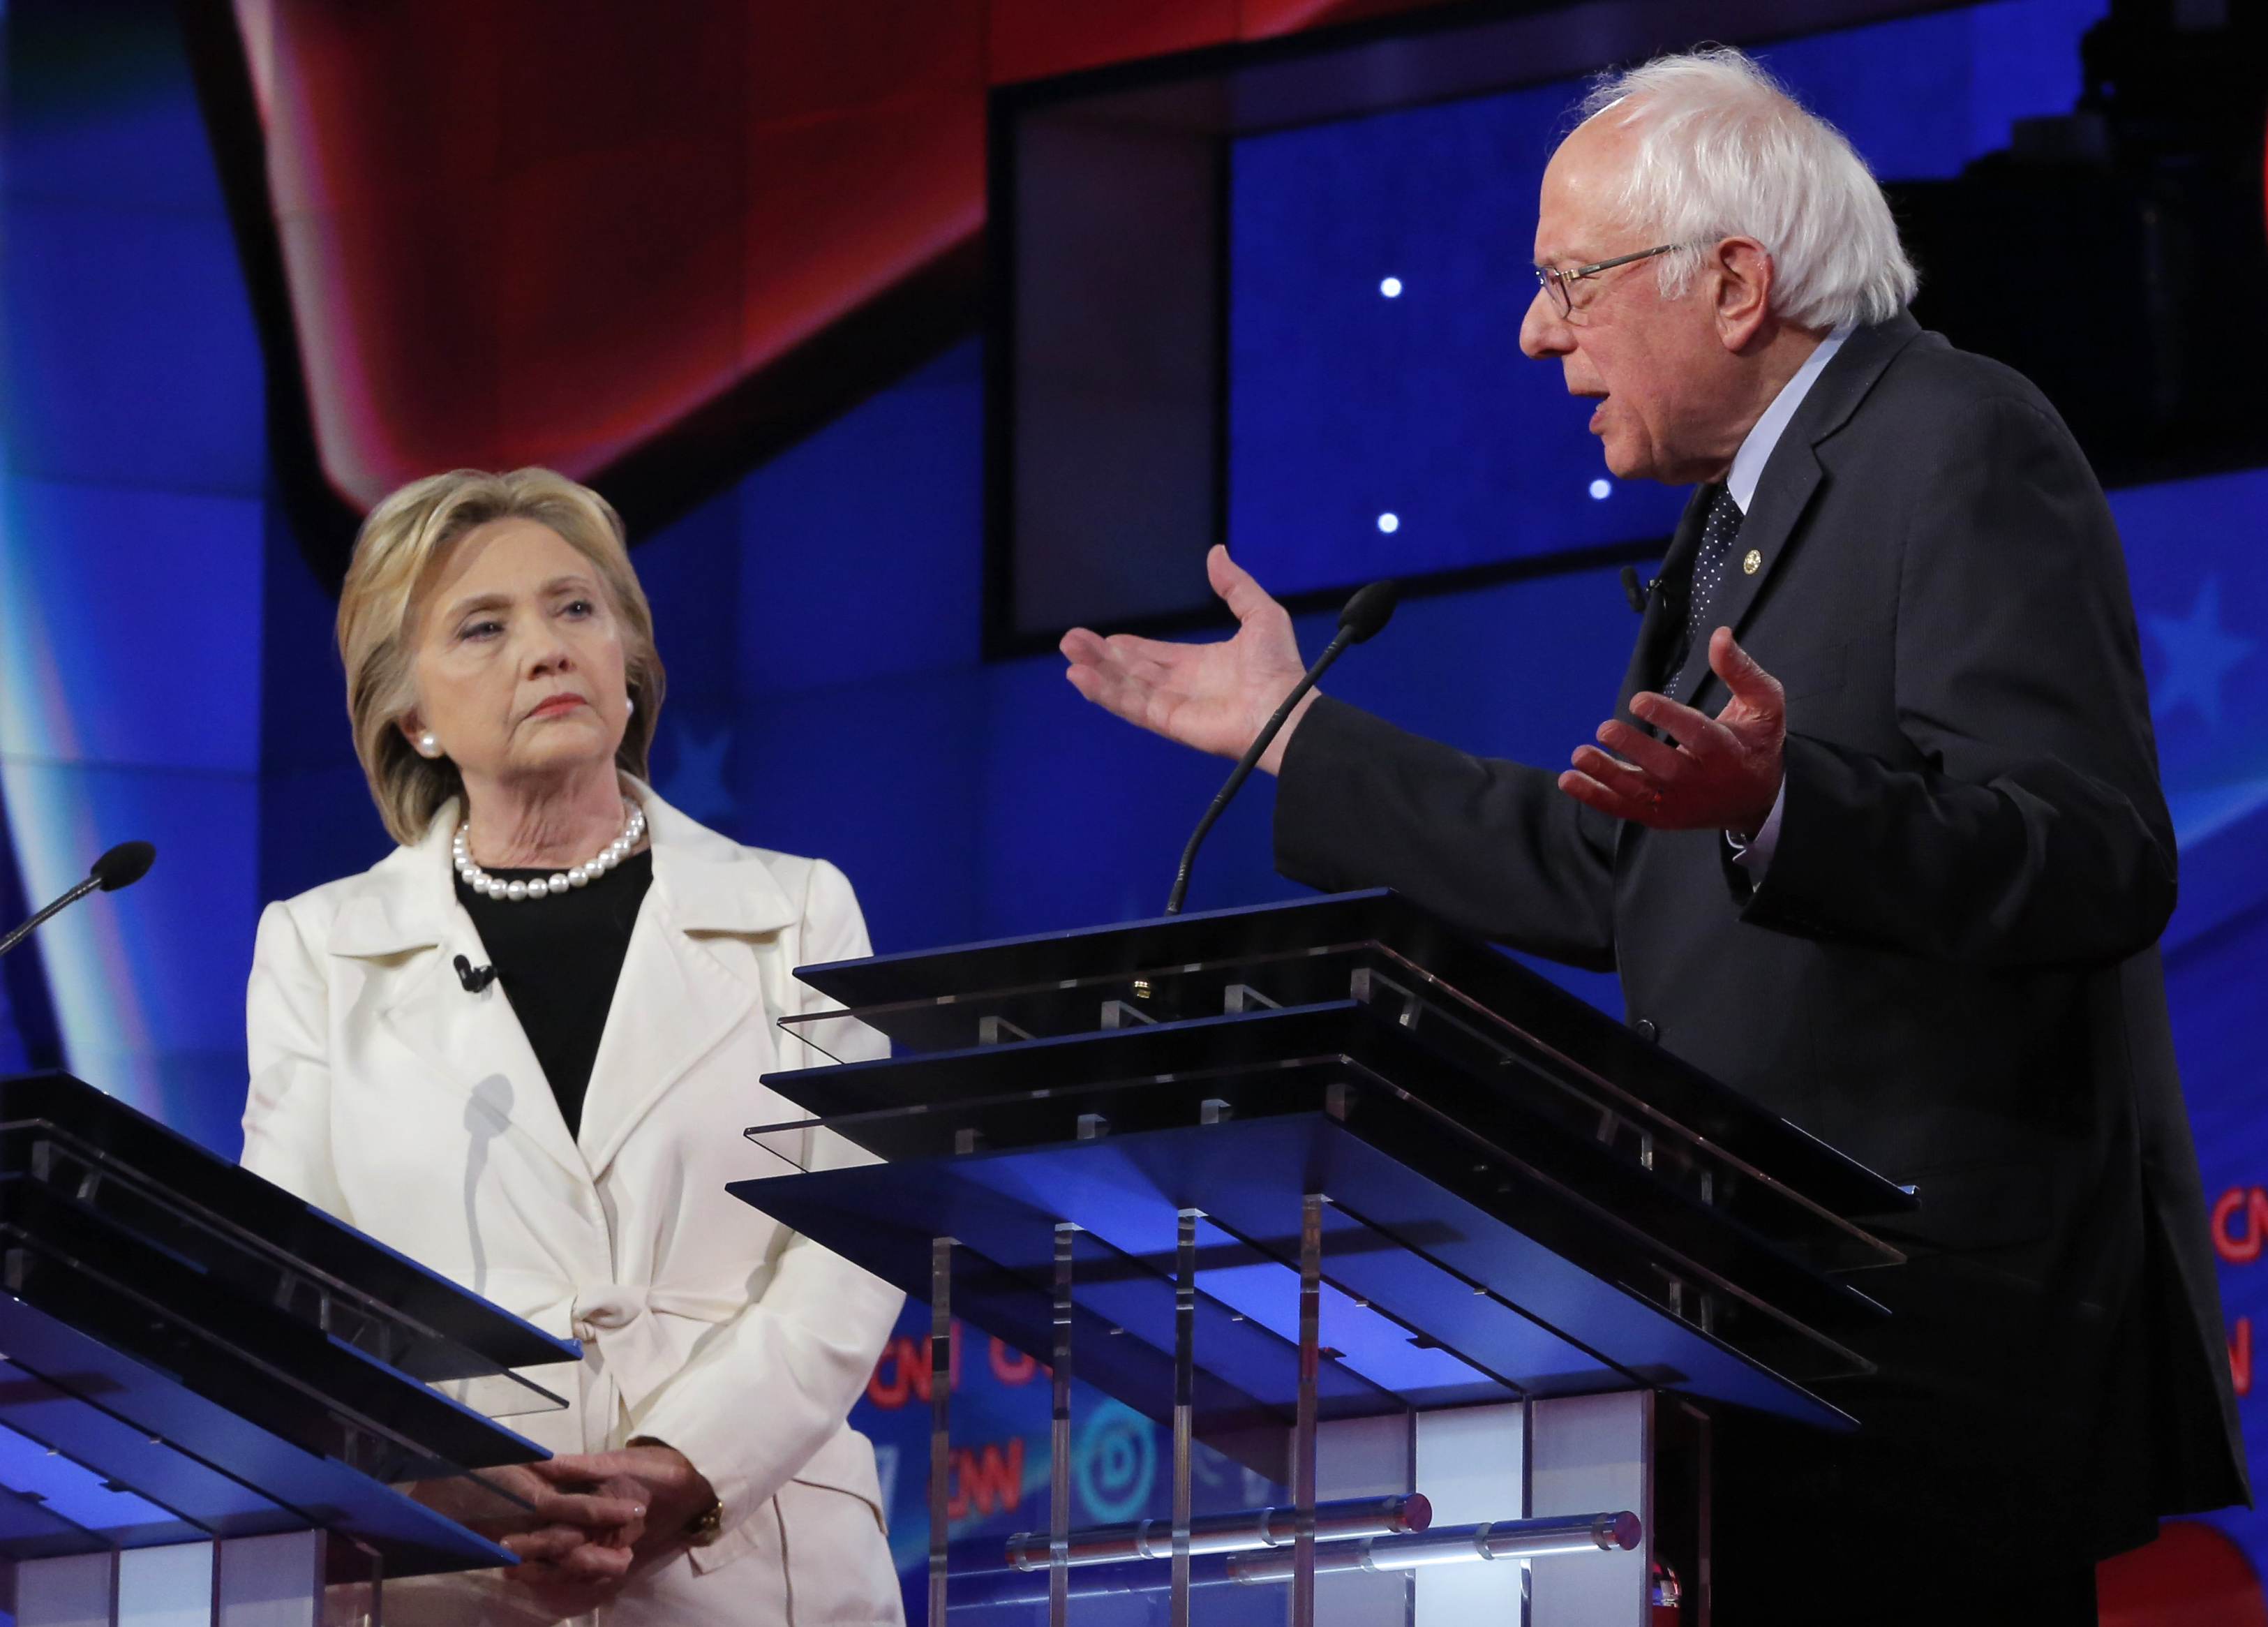 Democratic U.S. presidential candidates Hillary Clinton and Bernie Sanders during a Democratic debate hosted by CNN and New York One in New York April 14, 2016.